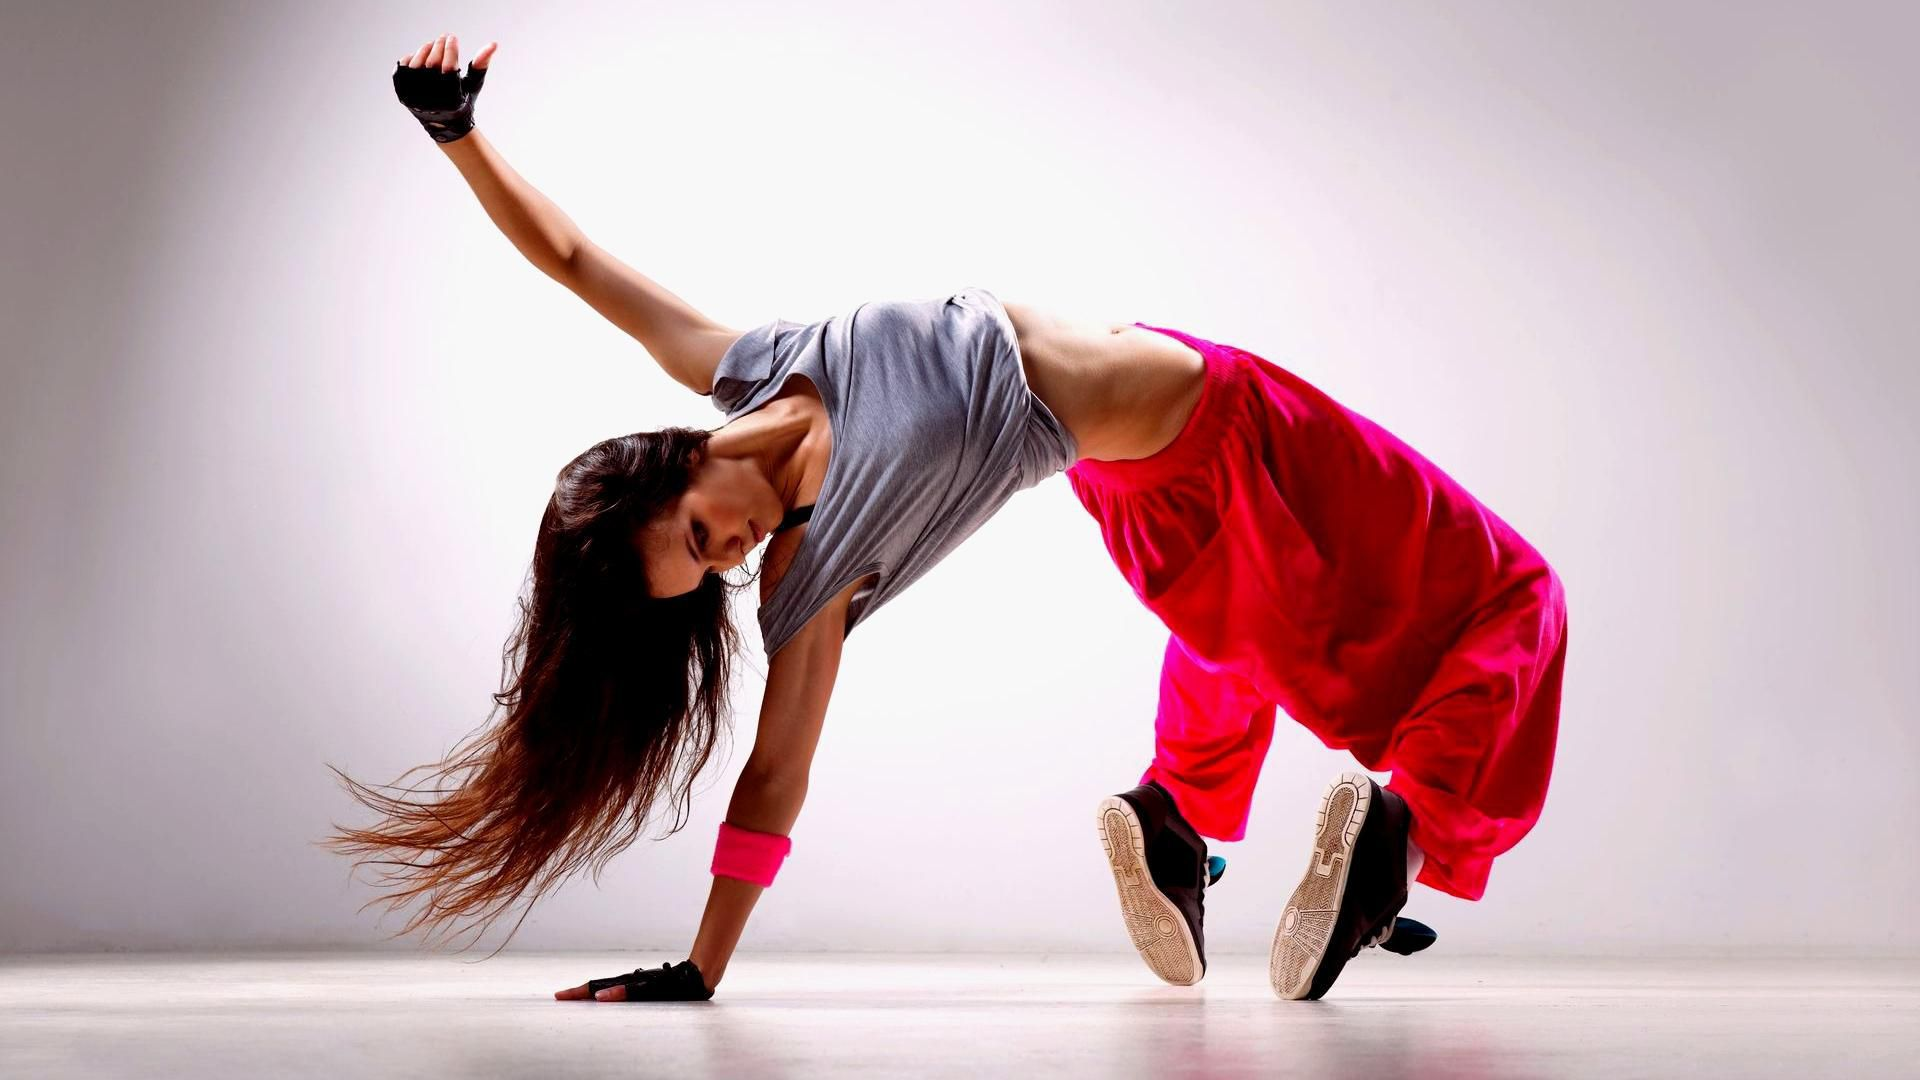 Breakdance Wallpapers